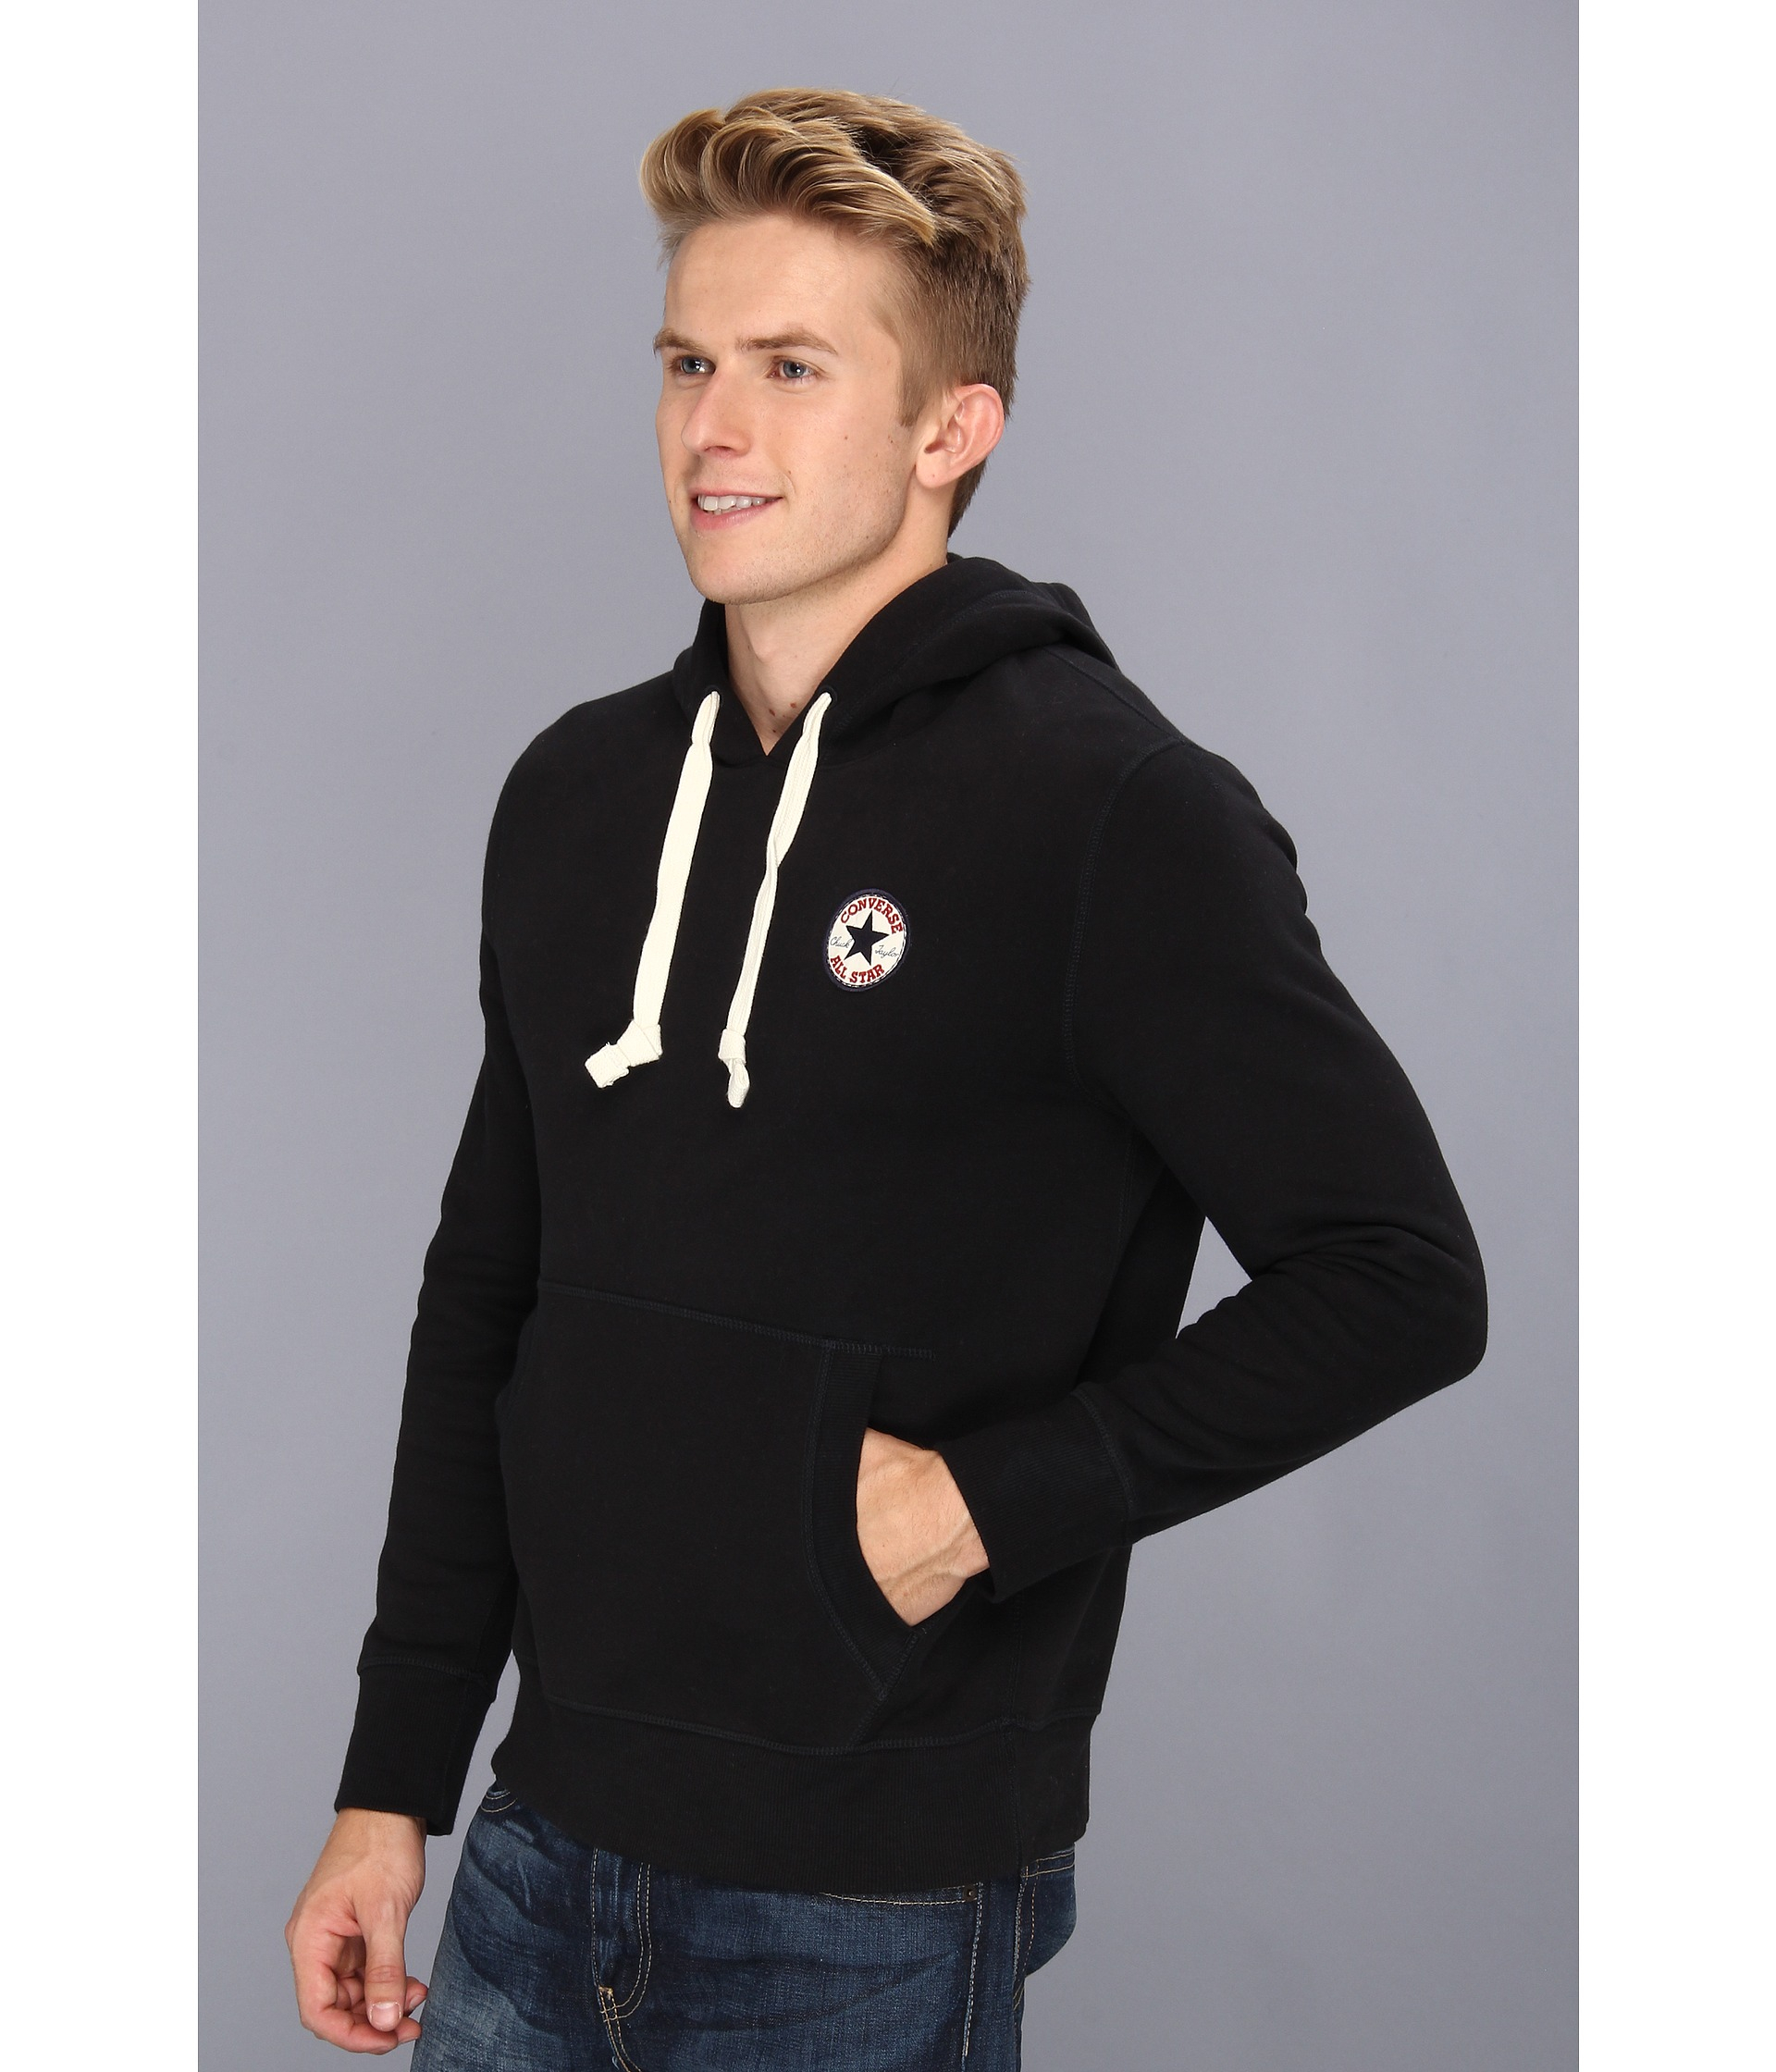 Lyst - Converse Core Chuck Patch Fleece Pullover Hoodie in Black for Men 4f051207aba90